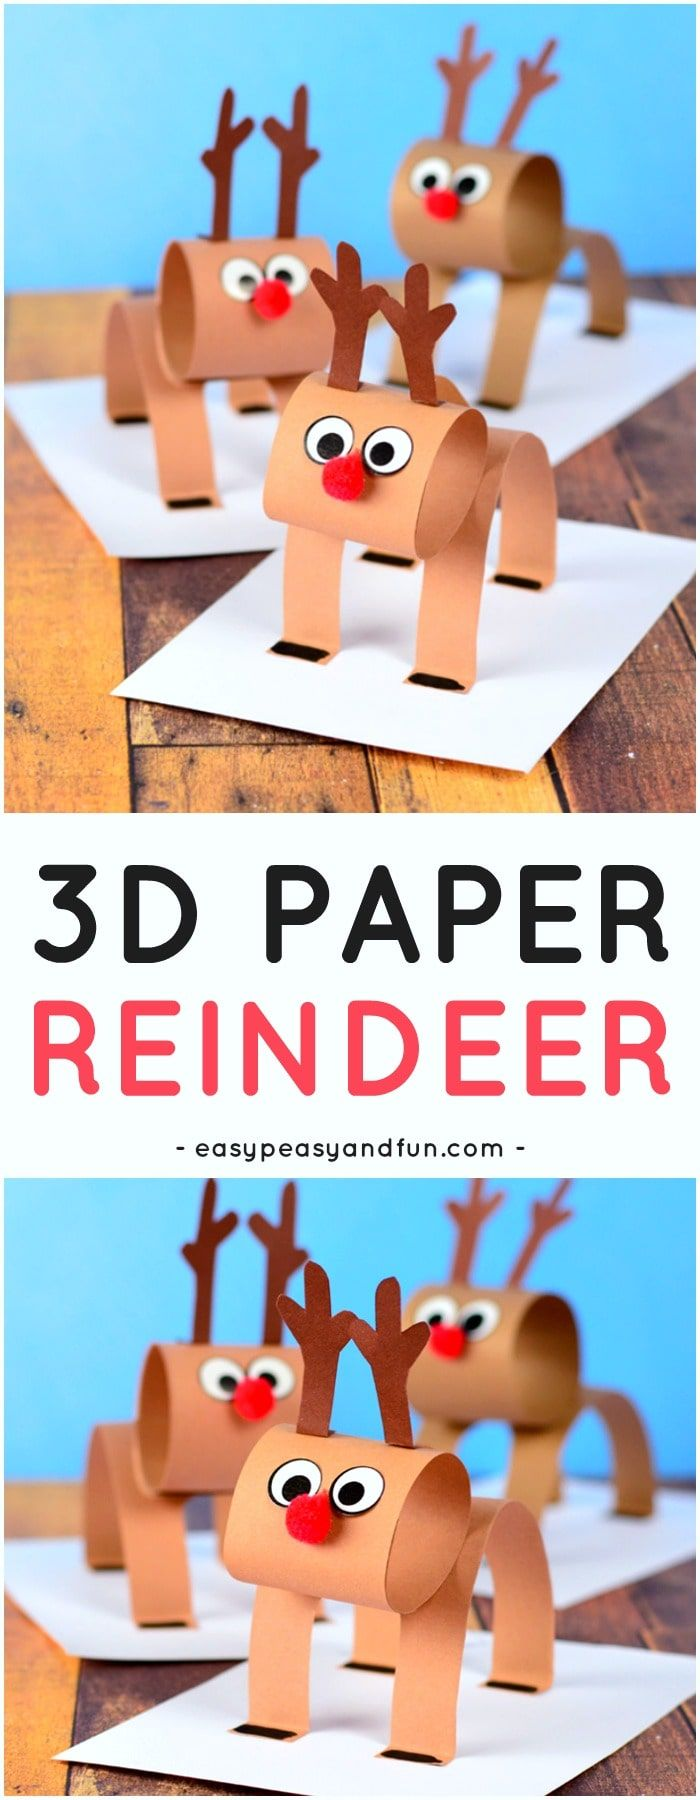 3d Construction Paper Reindeer Christmas Craft Idea With Template